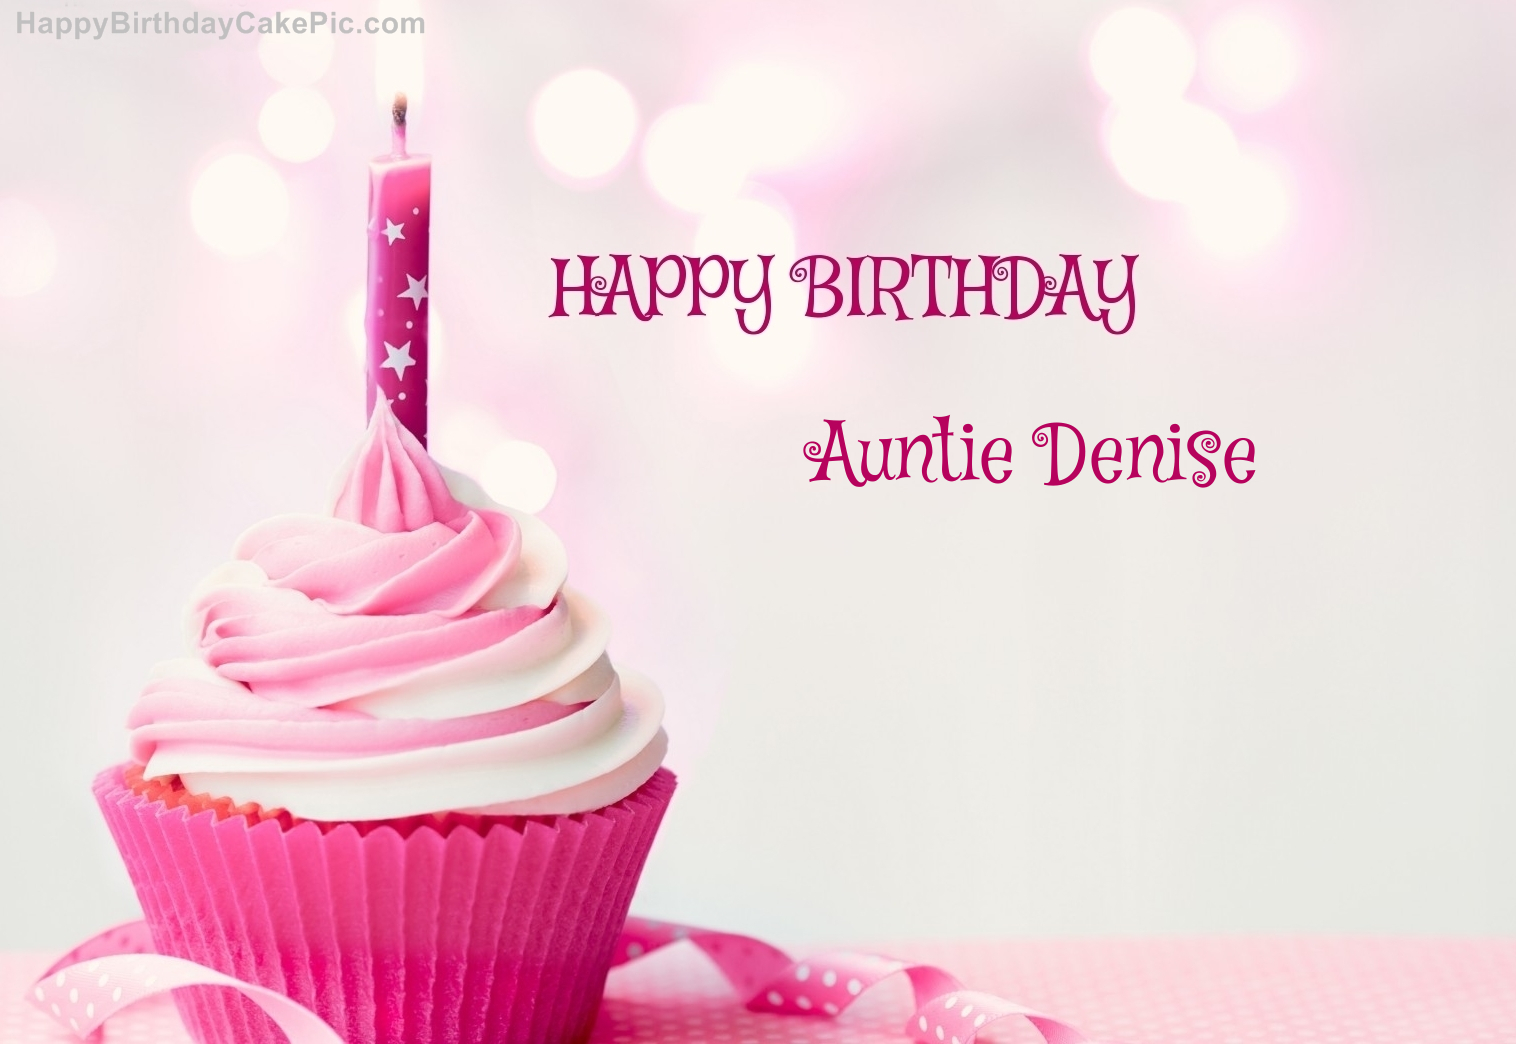 Happy Birthday Cupcake Candle Pink Cake For Auntie Denise